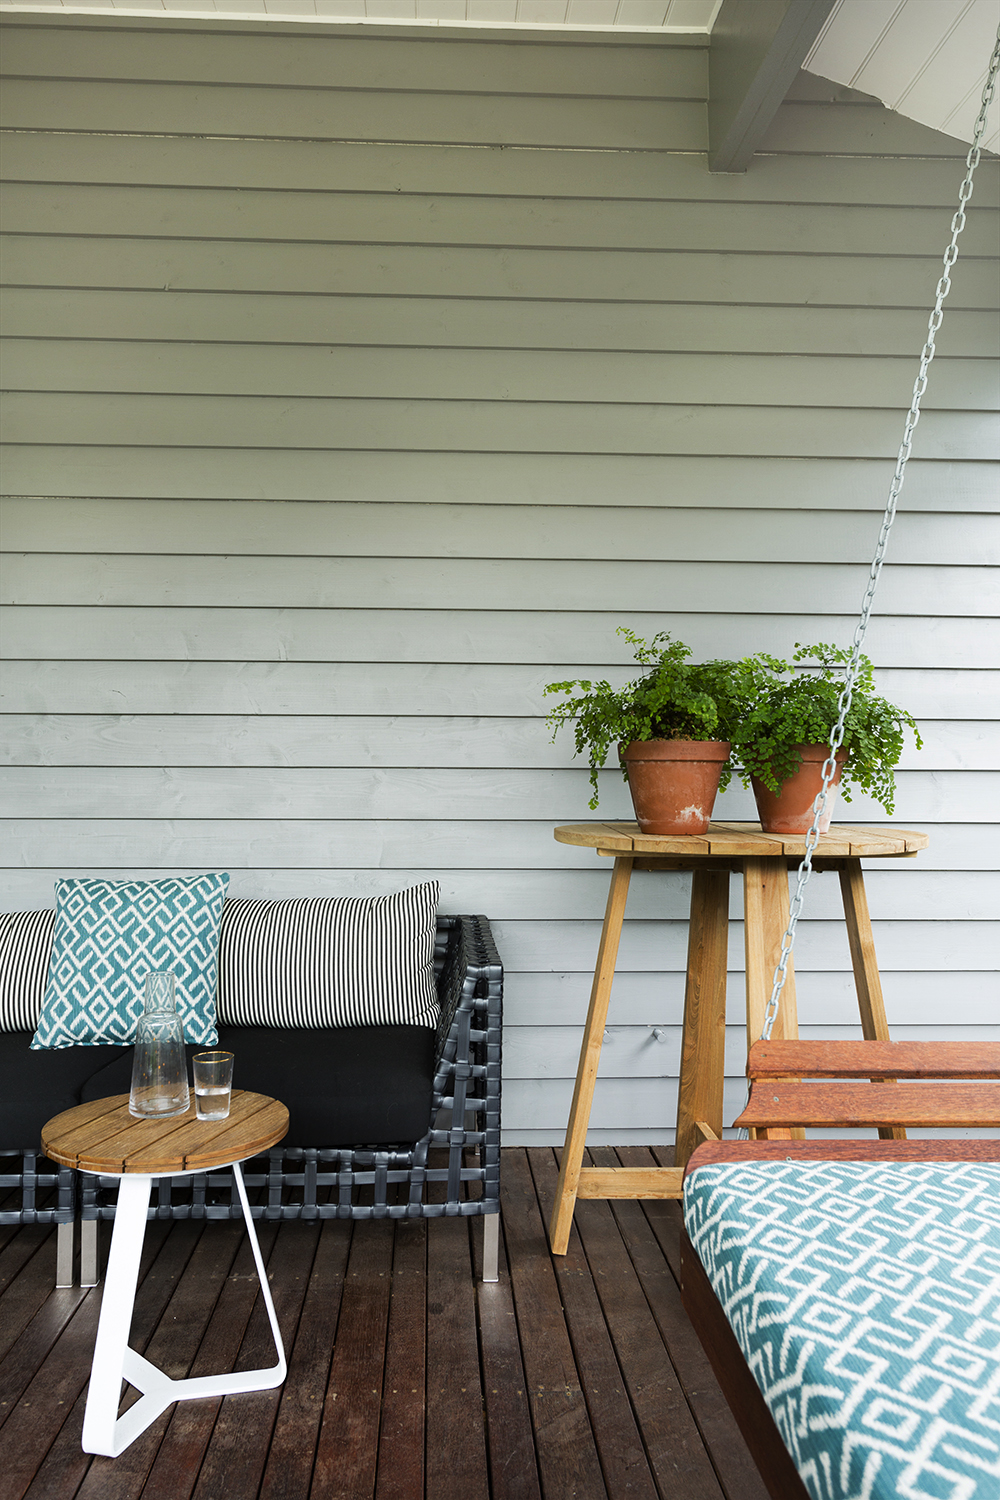 Outdoor room design by Melbourne interior designer Meredith Lee